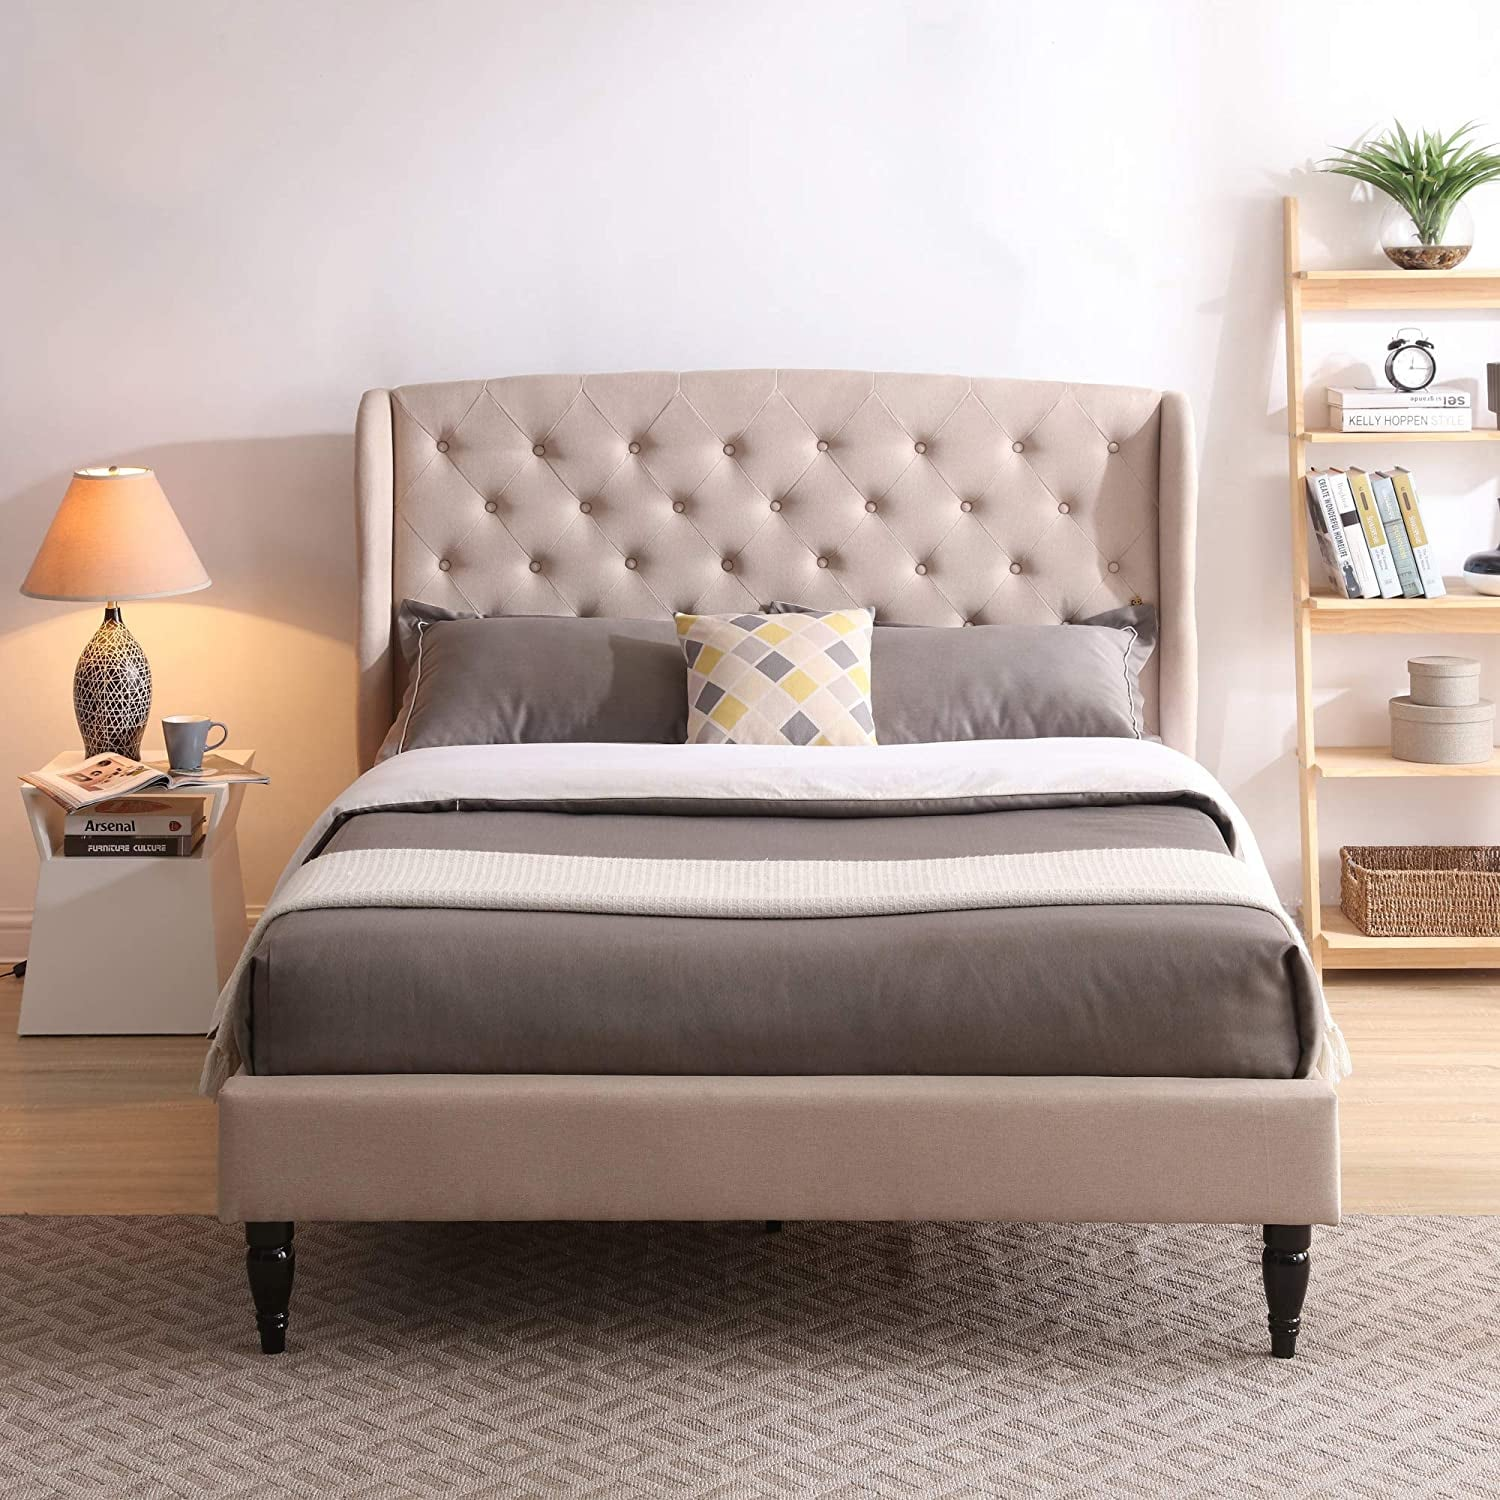 Picture of: The Best Upholstered Beds And Headboards Popsugar Home